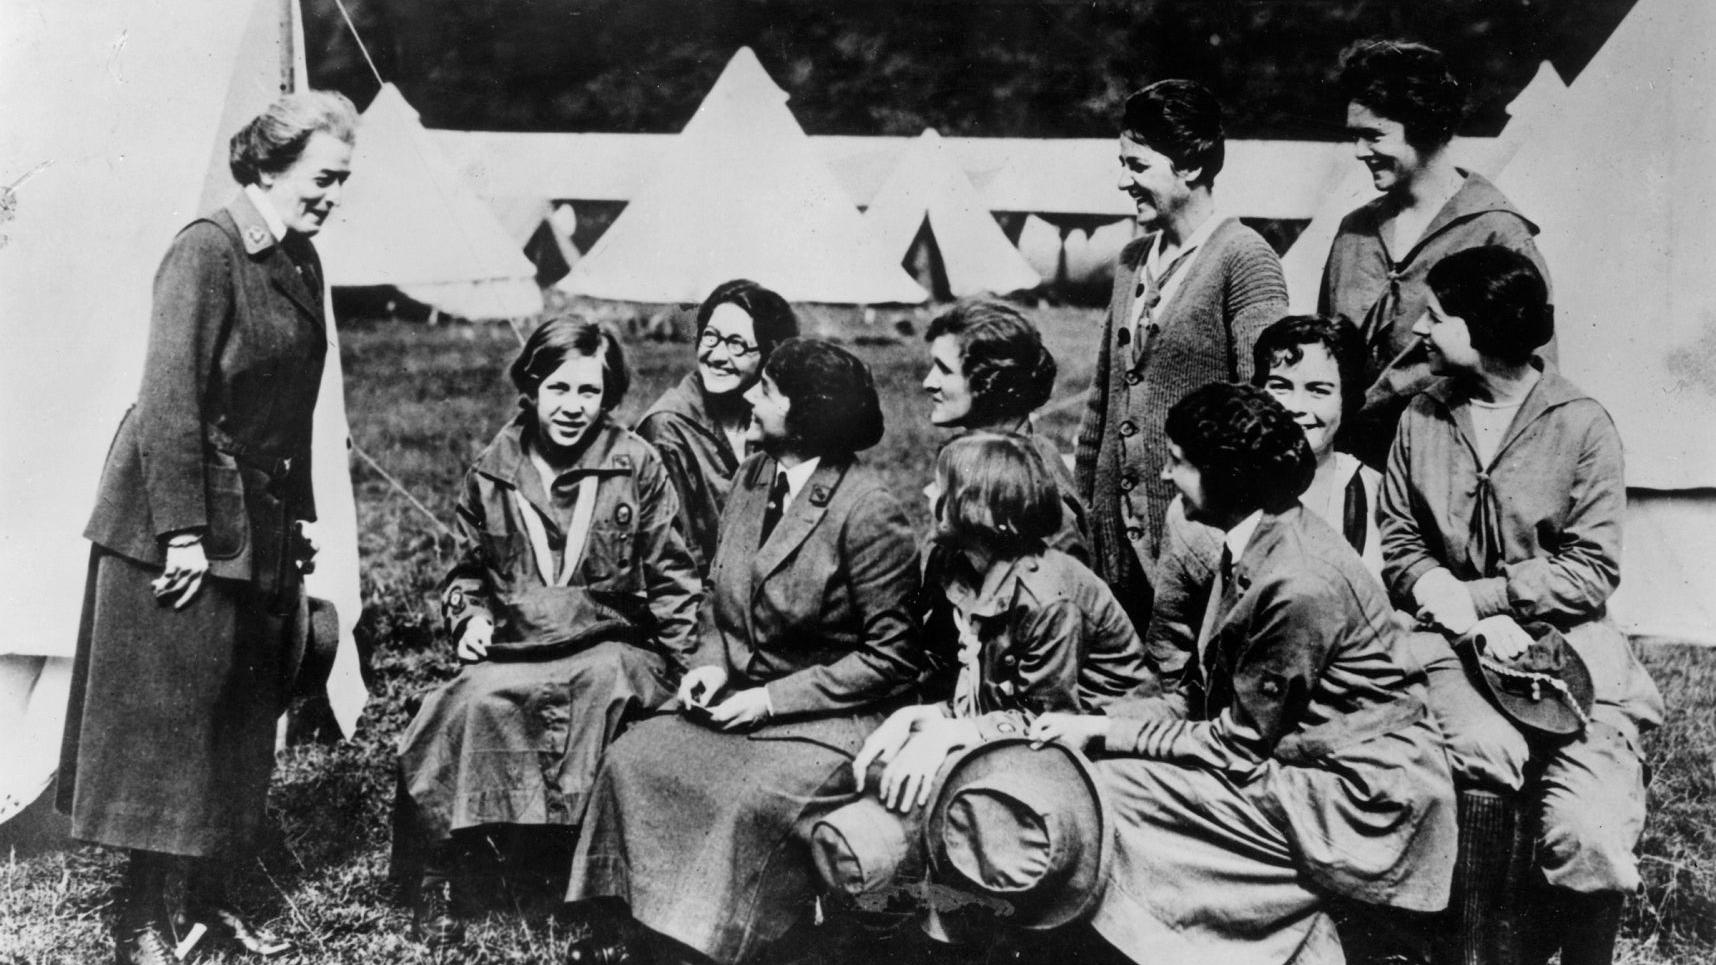 Girl Scouts turns 107 on Tuesday. A look at its history, from 1912 to today